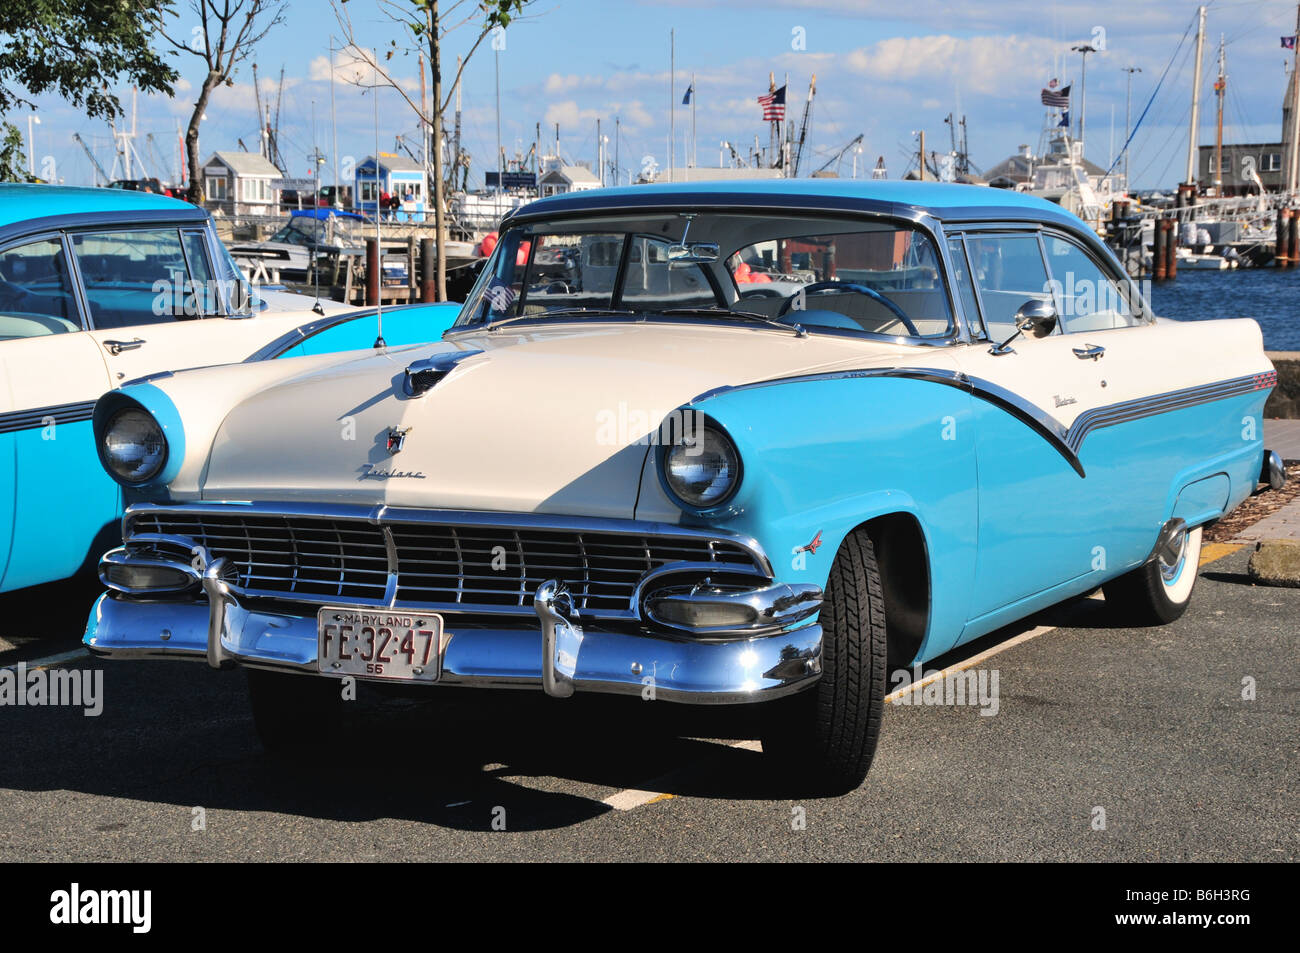 1950s Ford Fairlane Victoria classic car, USA Stock Photo, Royalty ...